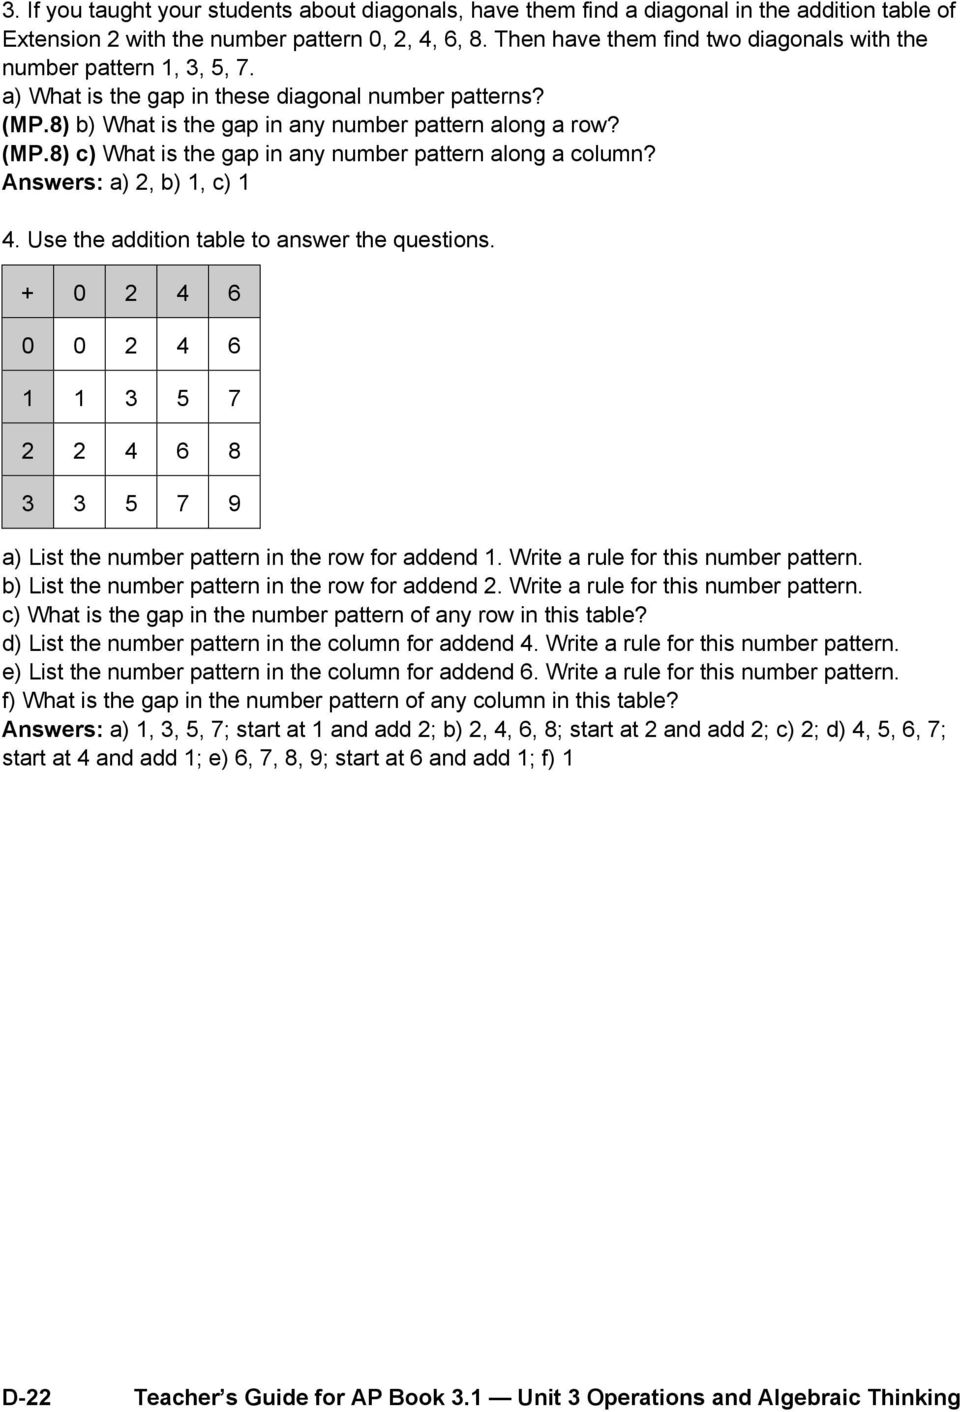 Answers: a) 2, b) 1, c) 1 4. Use the addition table to answer the questions. + 0 2 4 6 0 0 2 4 6 1 1 3 5 7 2 2 4 6 8 3 3 5 7 9 a) List the number pattern in the row for addend 1.